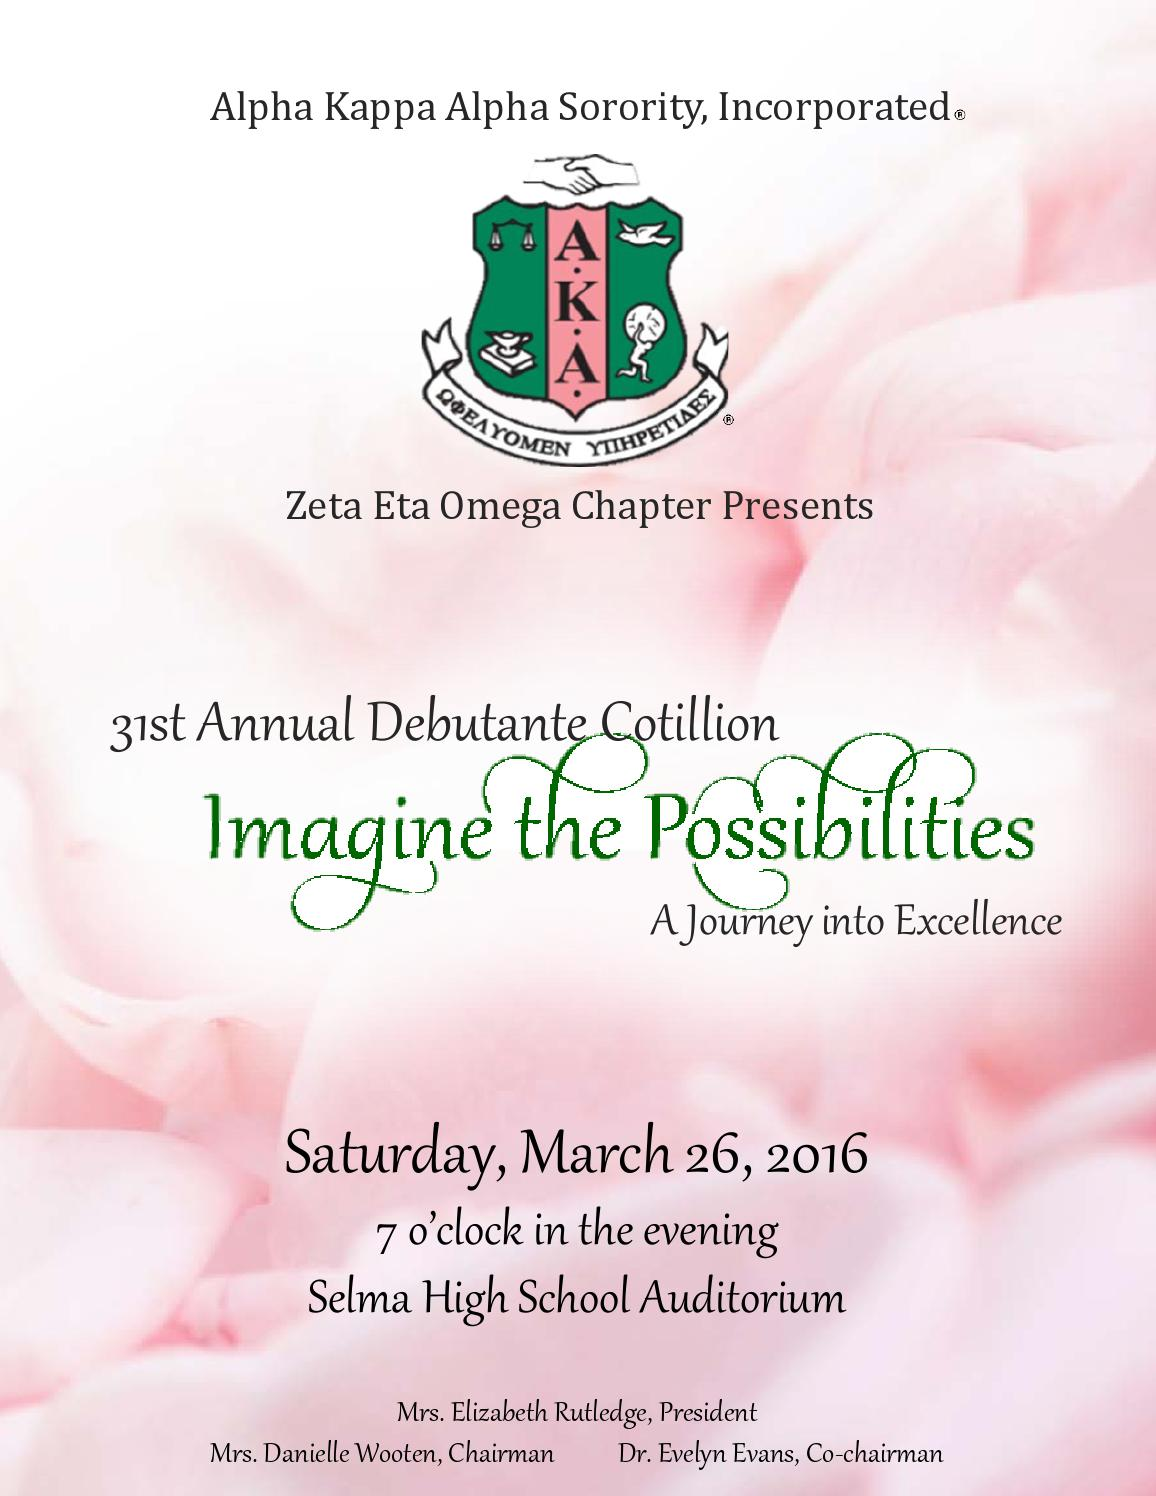 Alpha Kappa Alpha Sorority Inc Zeta Eta Omega Chapter